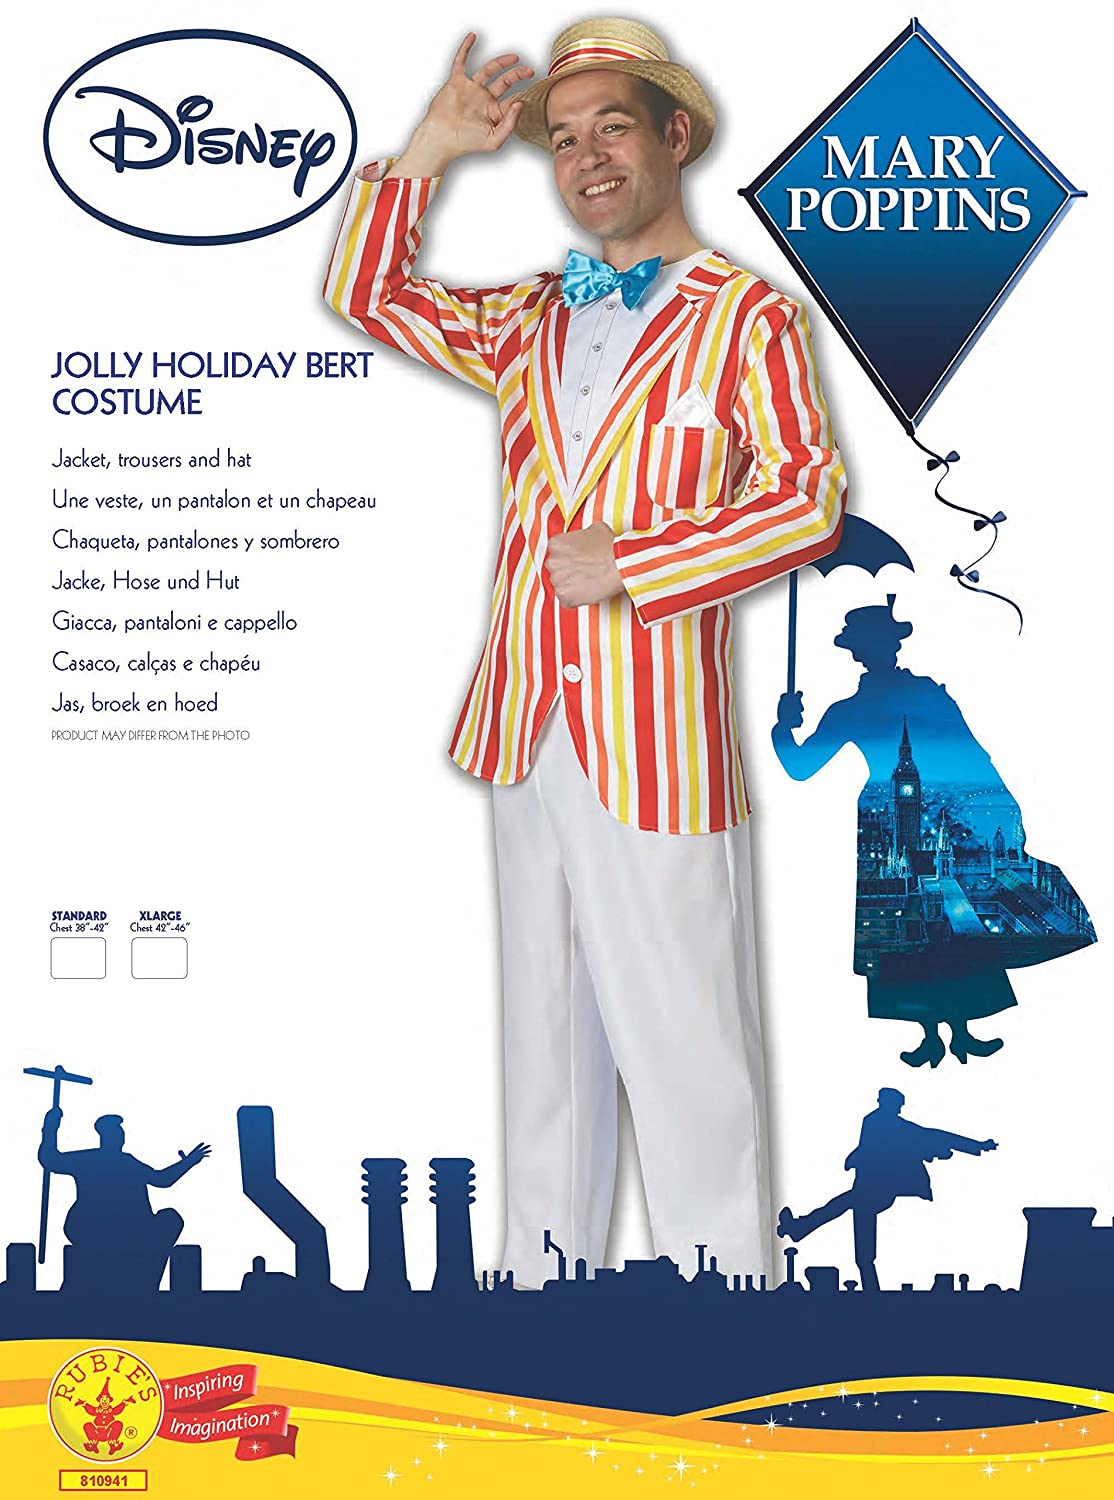 Amazon.com: Rubies Official Disney Bert Costume Jolly Holiday Mary Poppins, Adult Costume: Toys & Games